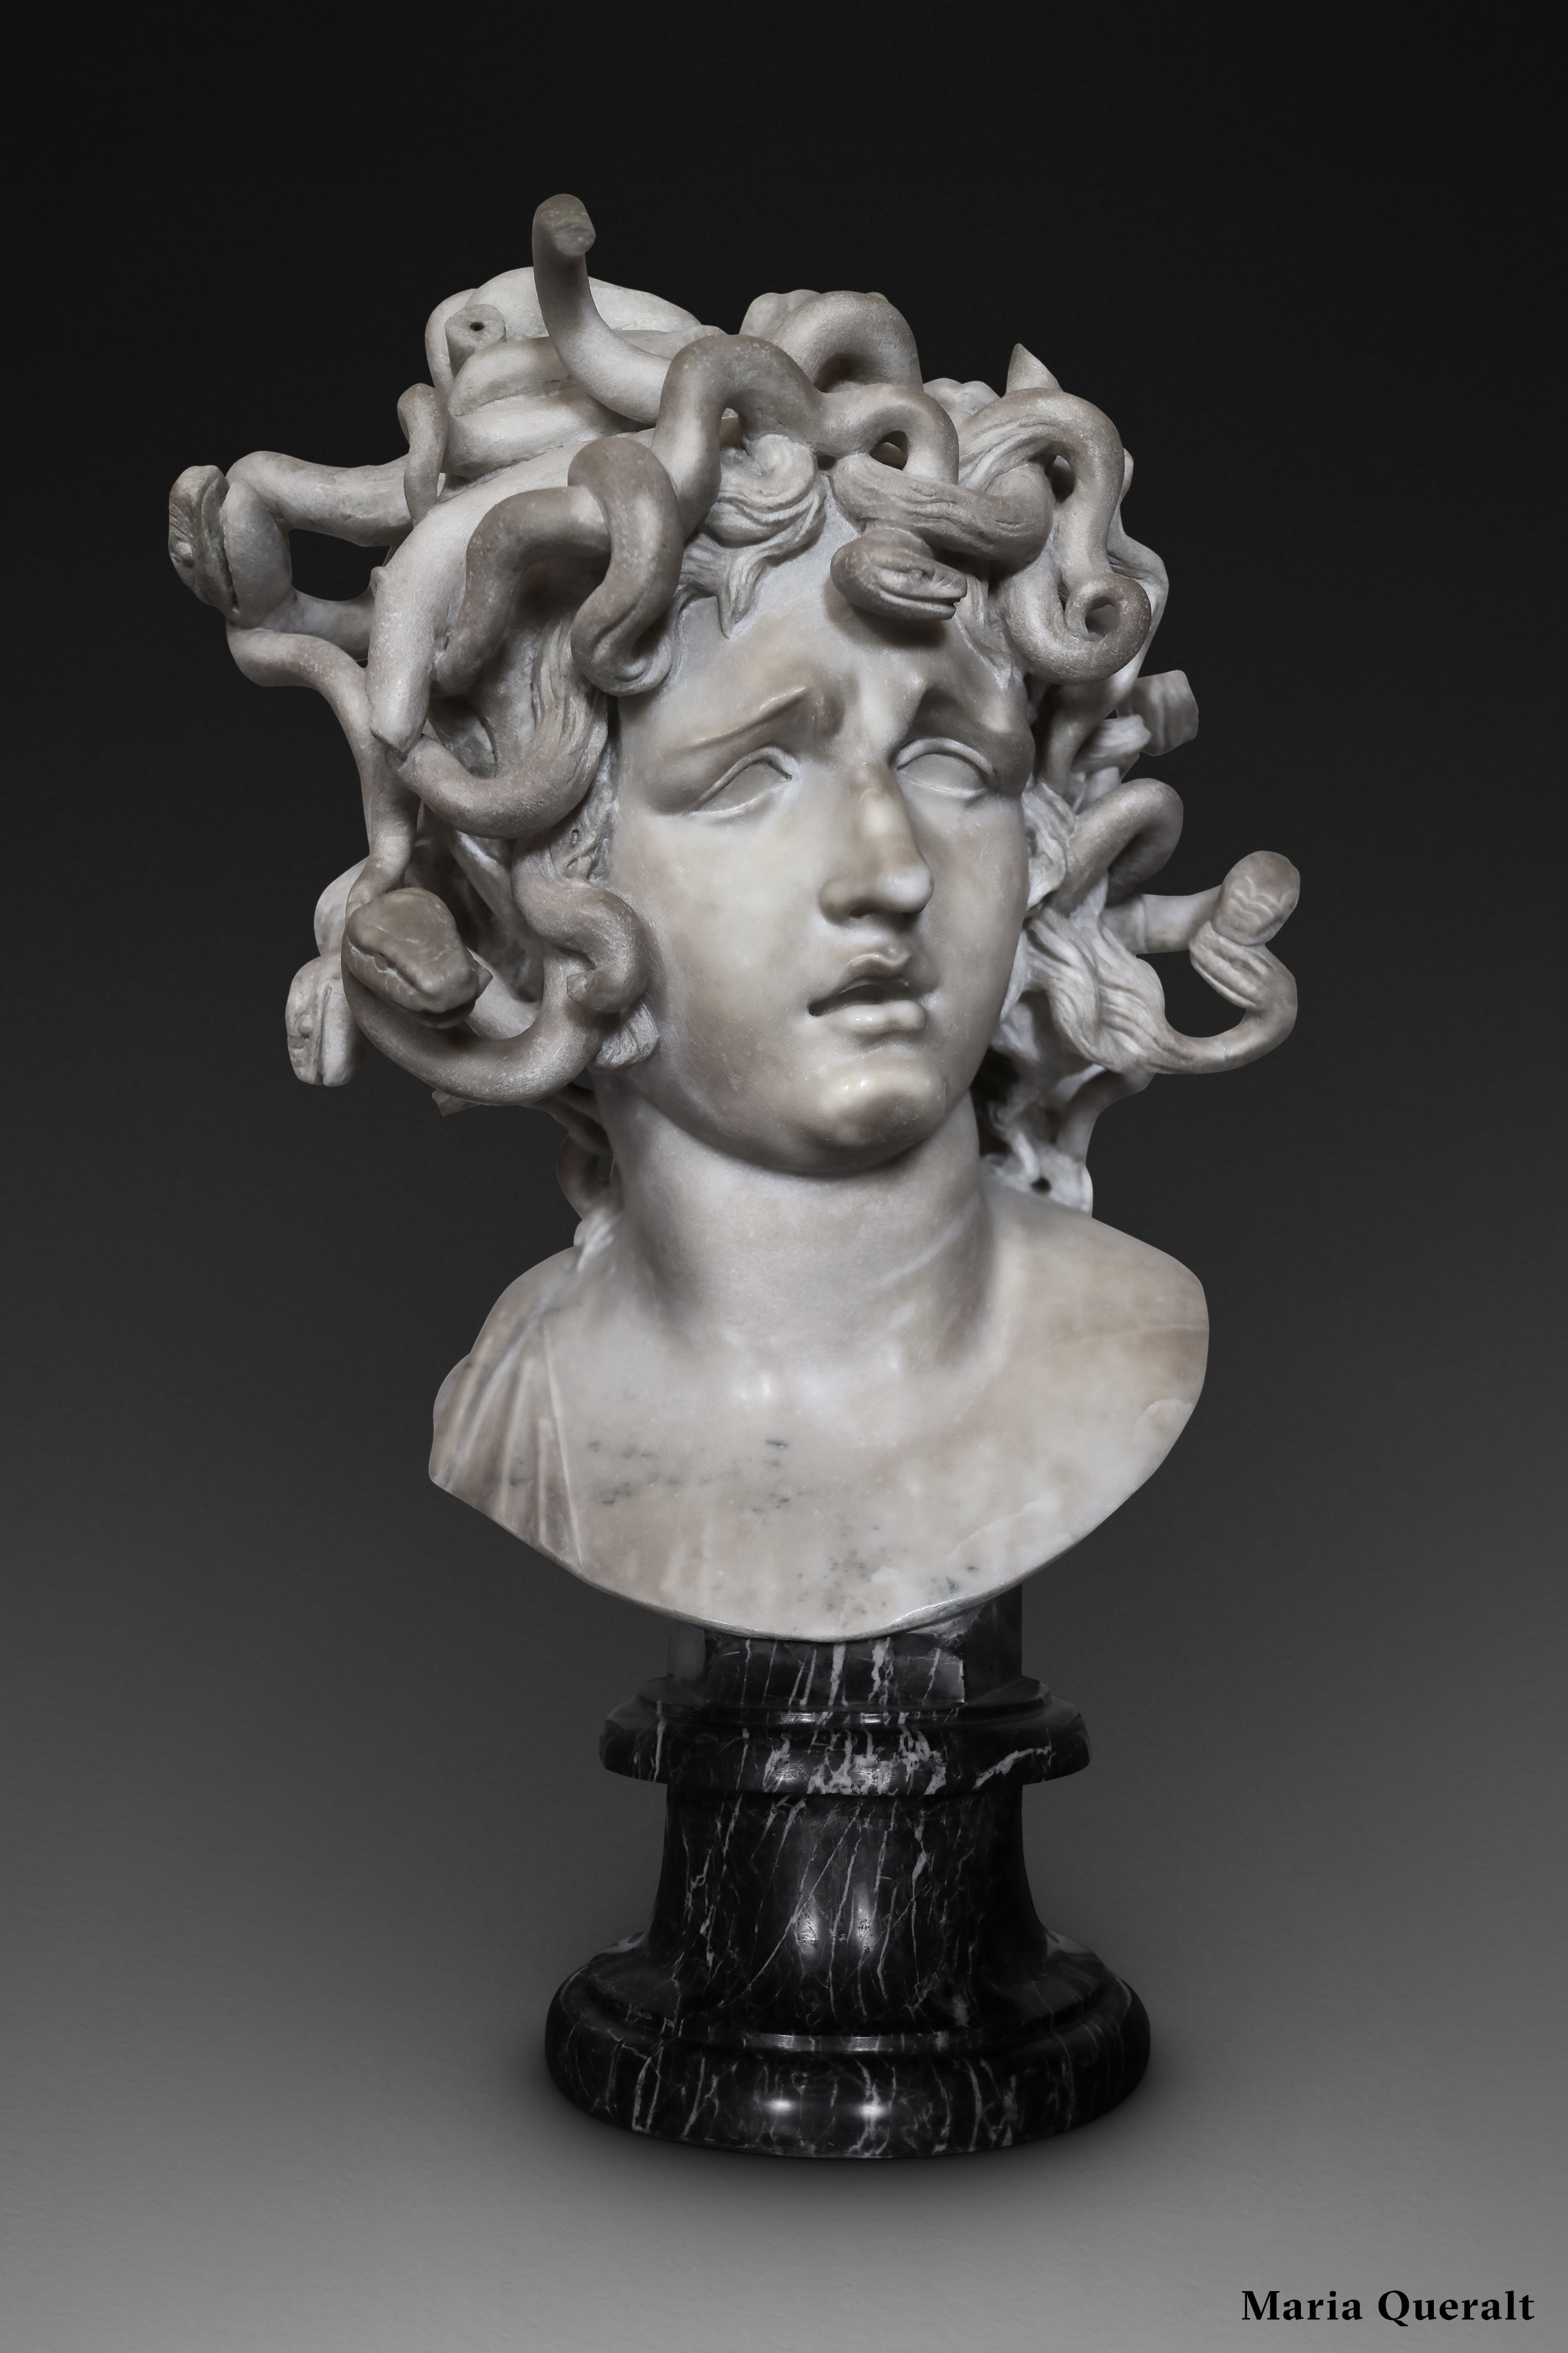 Marble sculpture of Medusa by Gian Lorenzo Bernini at the Capitoline Museums in Rome Photography and retouch by Maria Queralt